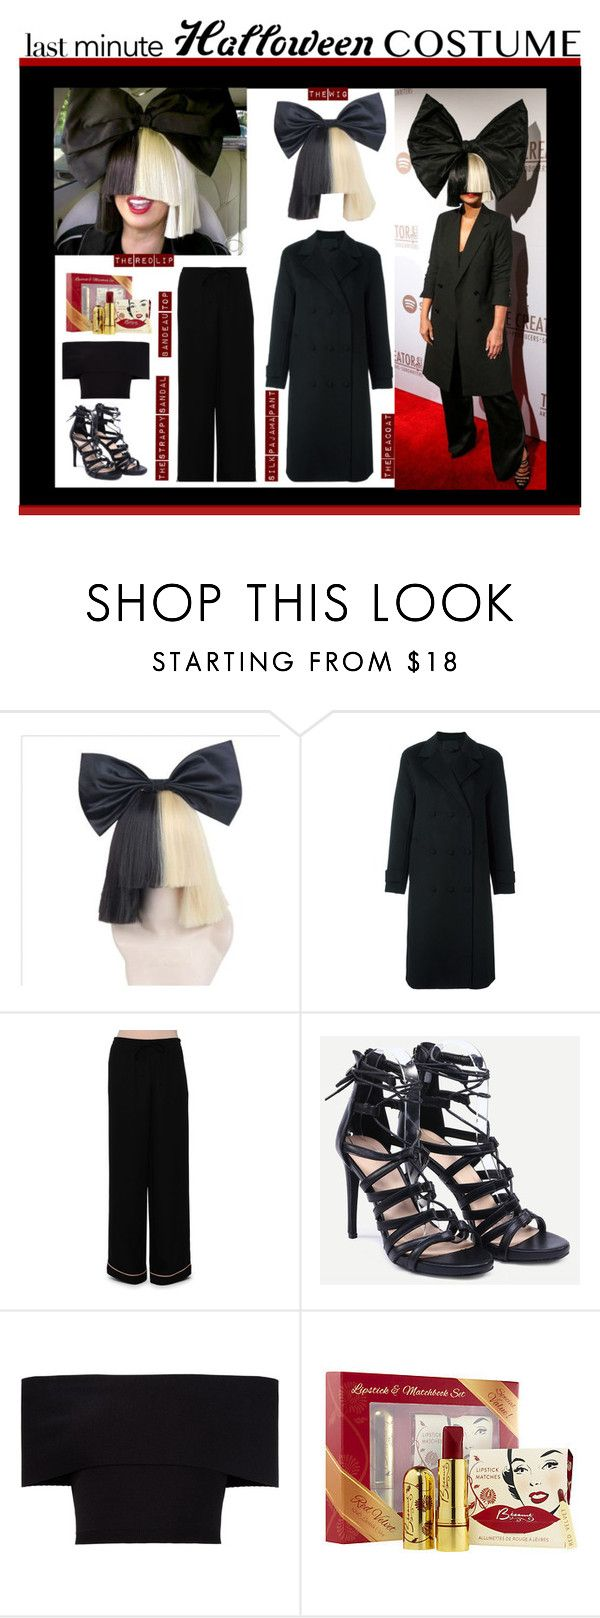 """Last-Minute Halloween Costume -SIA"" by m-e-l-o-d-e on Polyvore featuring Alexander Wang, Valentino, Rosetta Getty, Bésame, contestentry and halloweencostume"